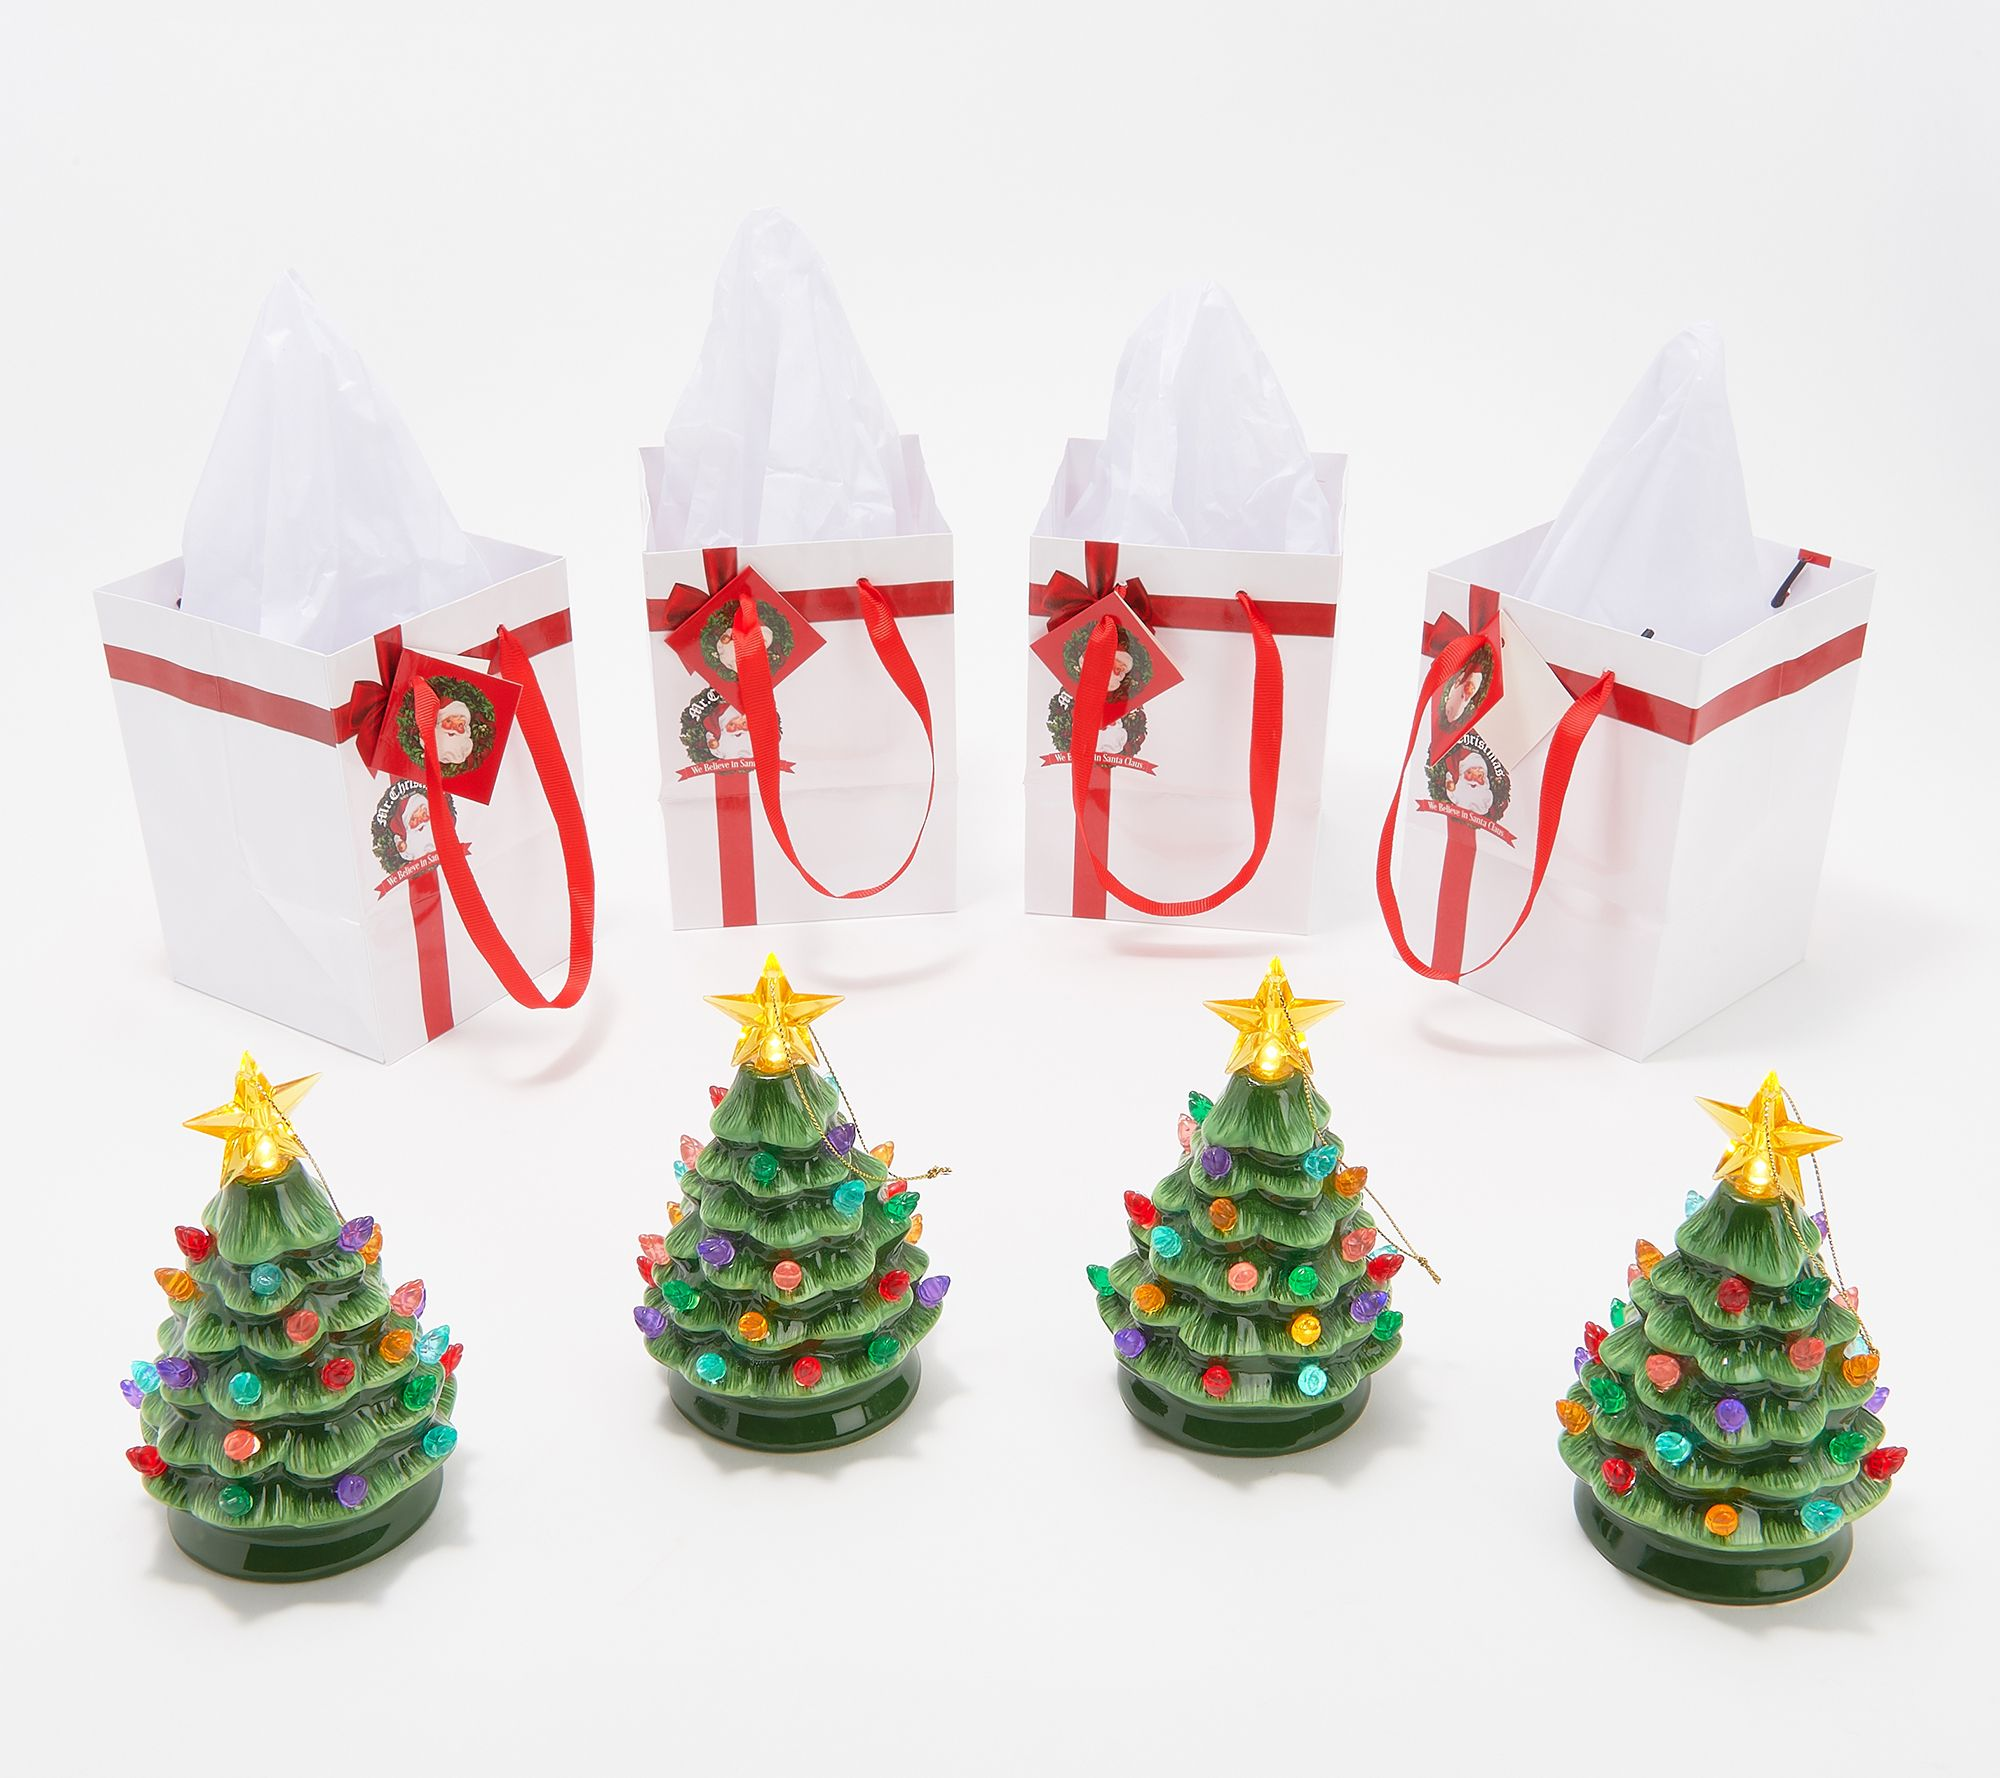 Horseshoe Christmas Tree For Sale.Mr Christmas Set Of 4 Lit Nostalgic Tree Ornaments With Gift Bags Qvc Com